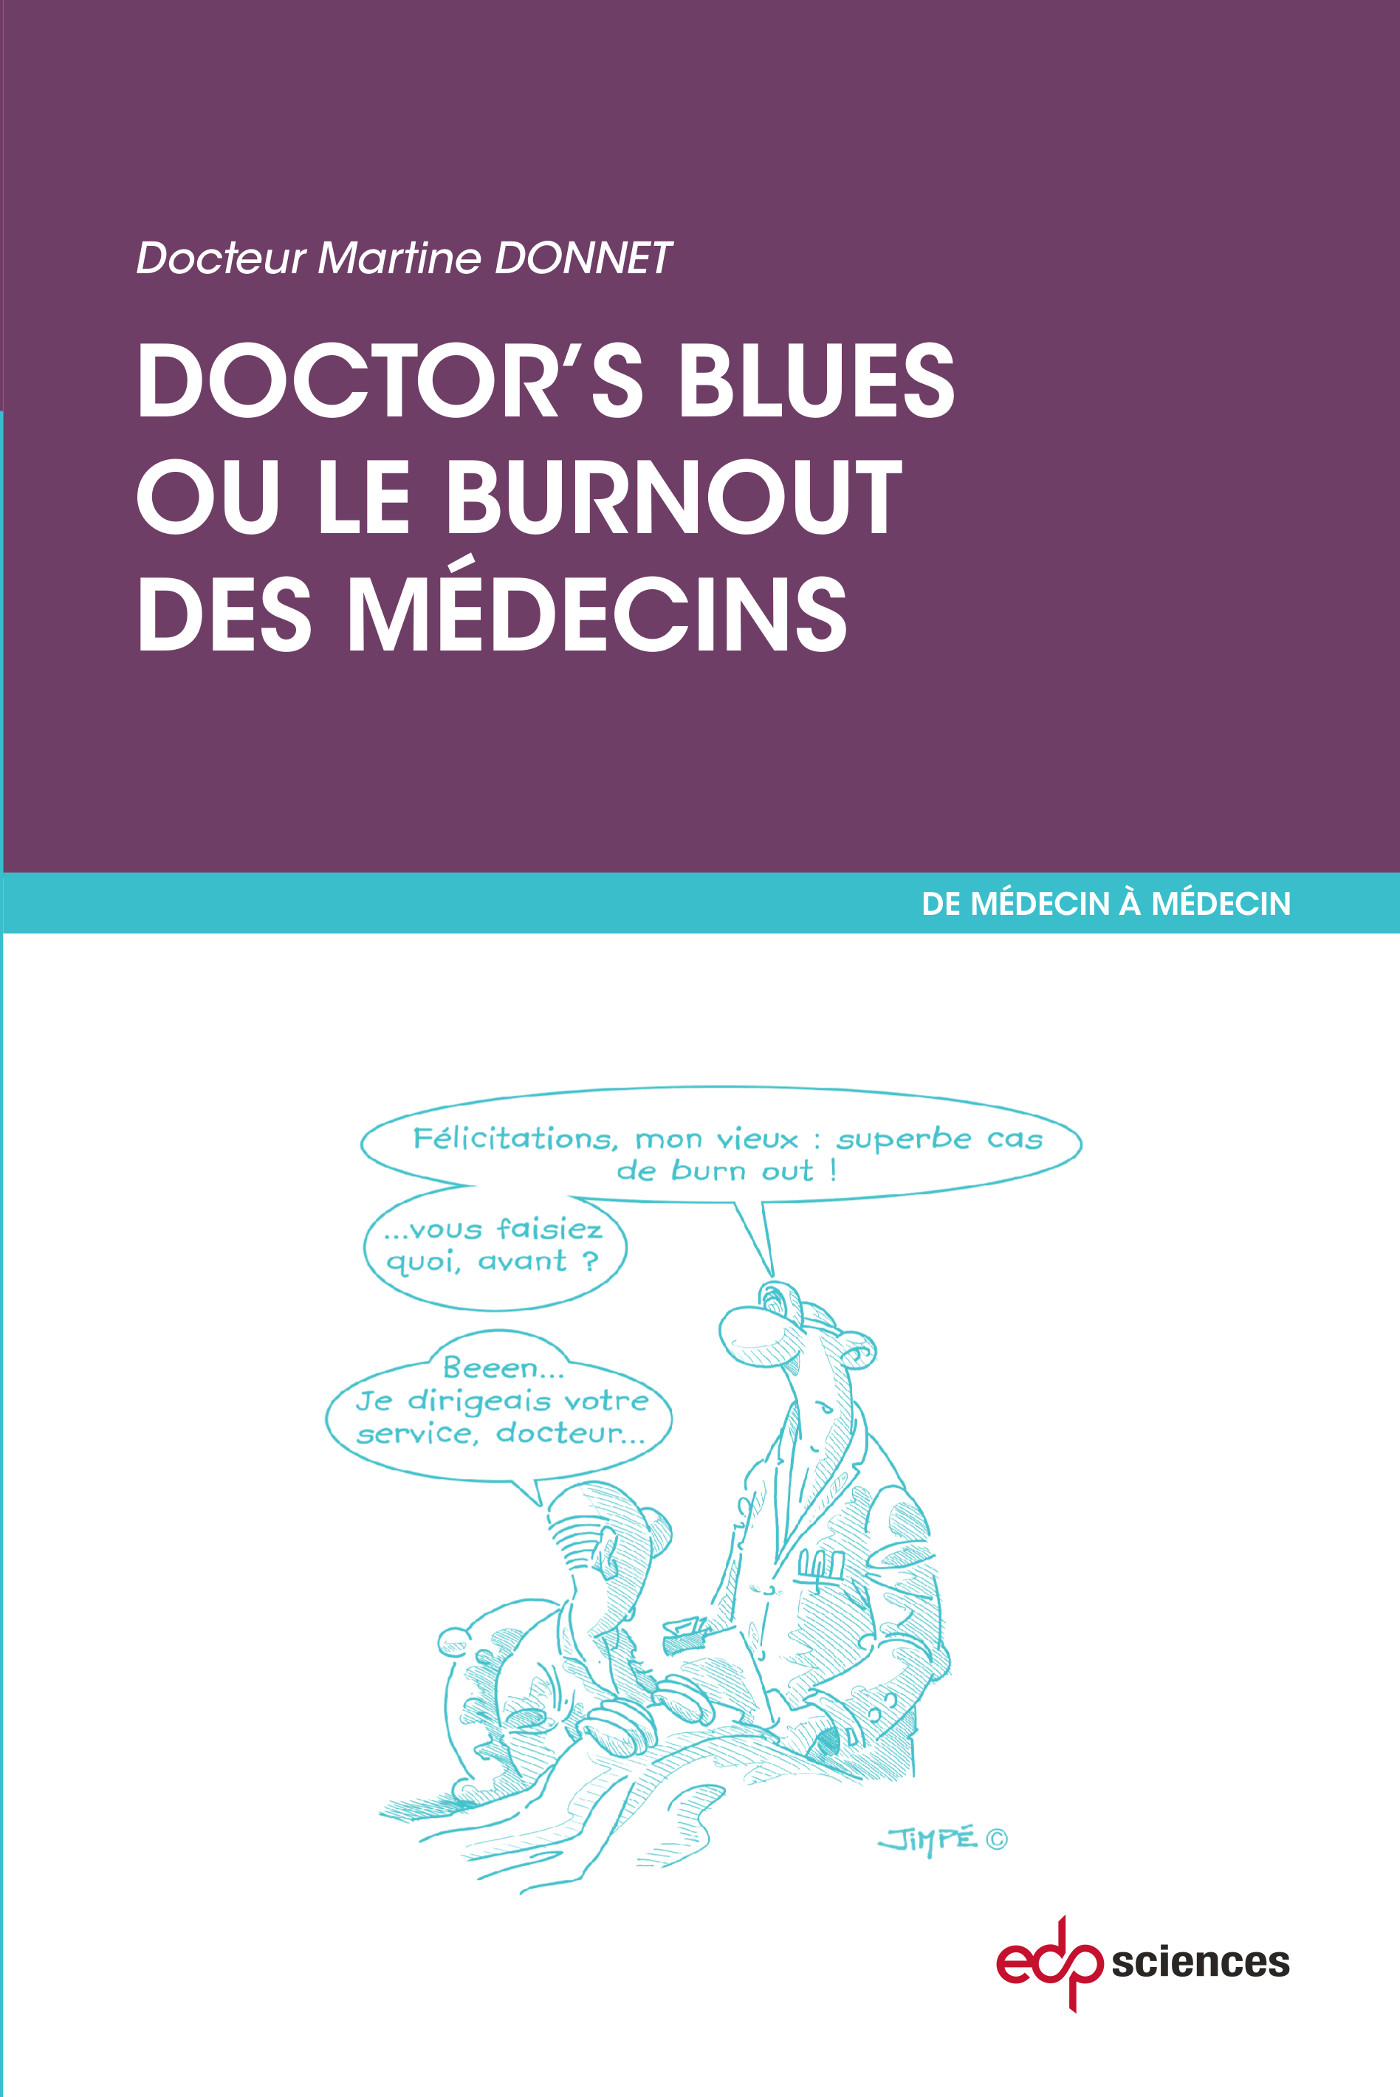 Doctor's blues ou le burnout des médecins